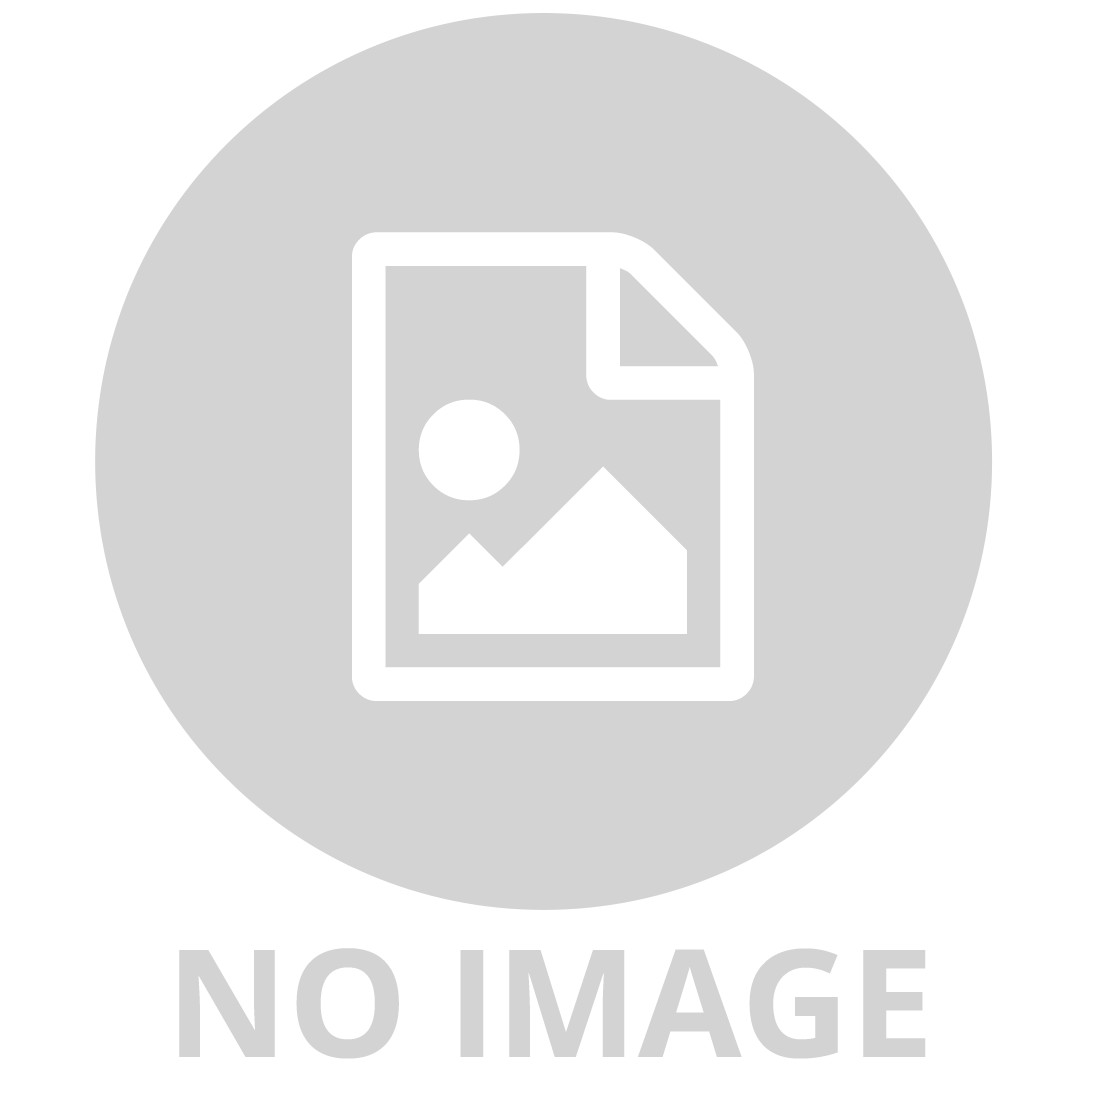 GRIT ELITE FREESTYLE SCOOTER - GREY/GREY GOLD QUAKE